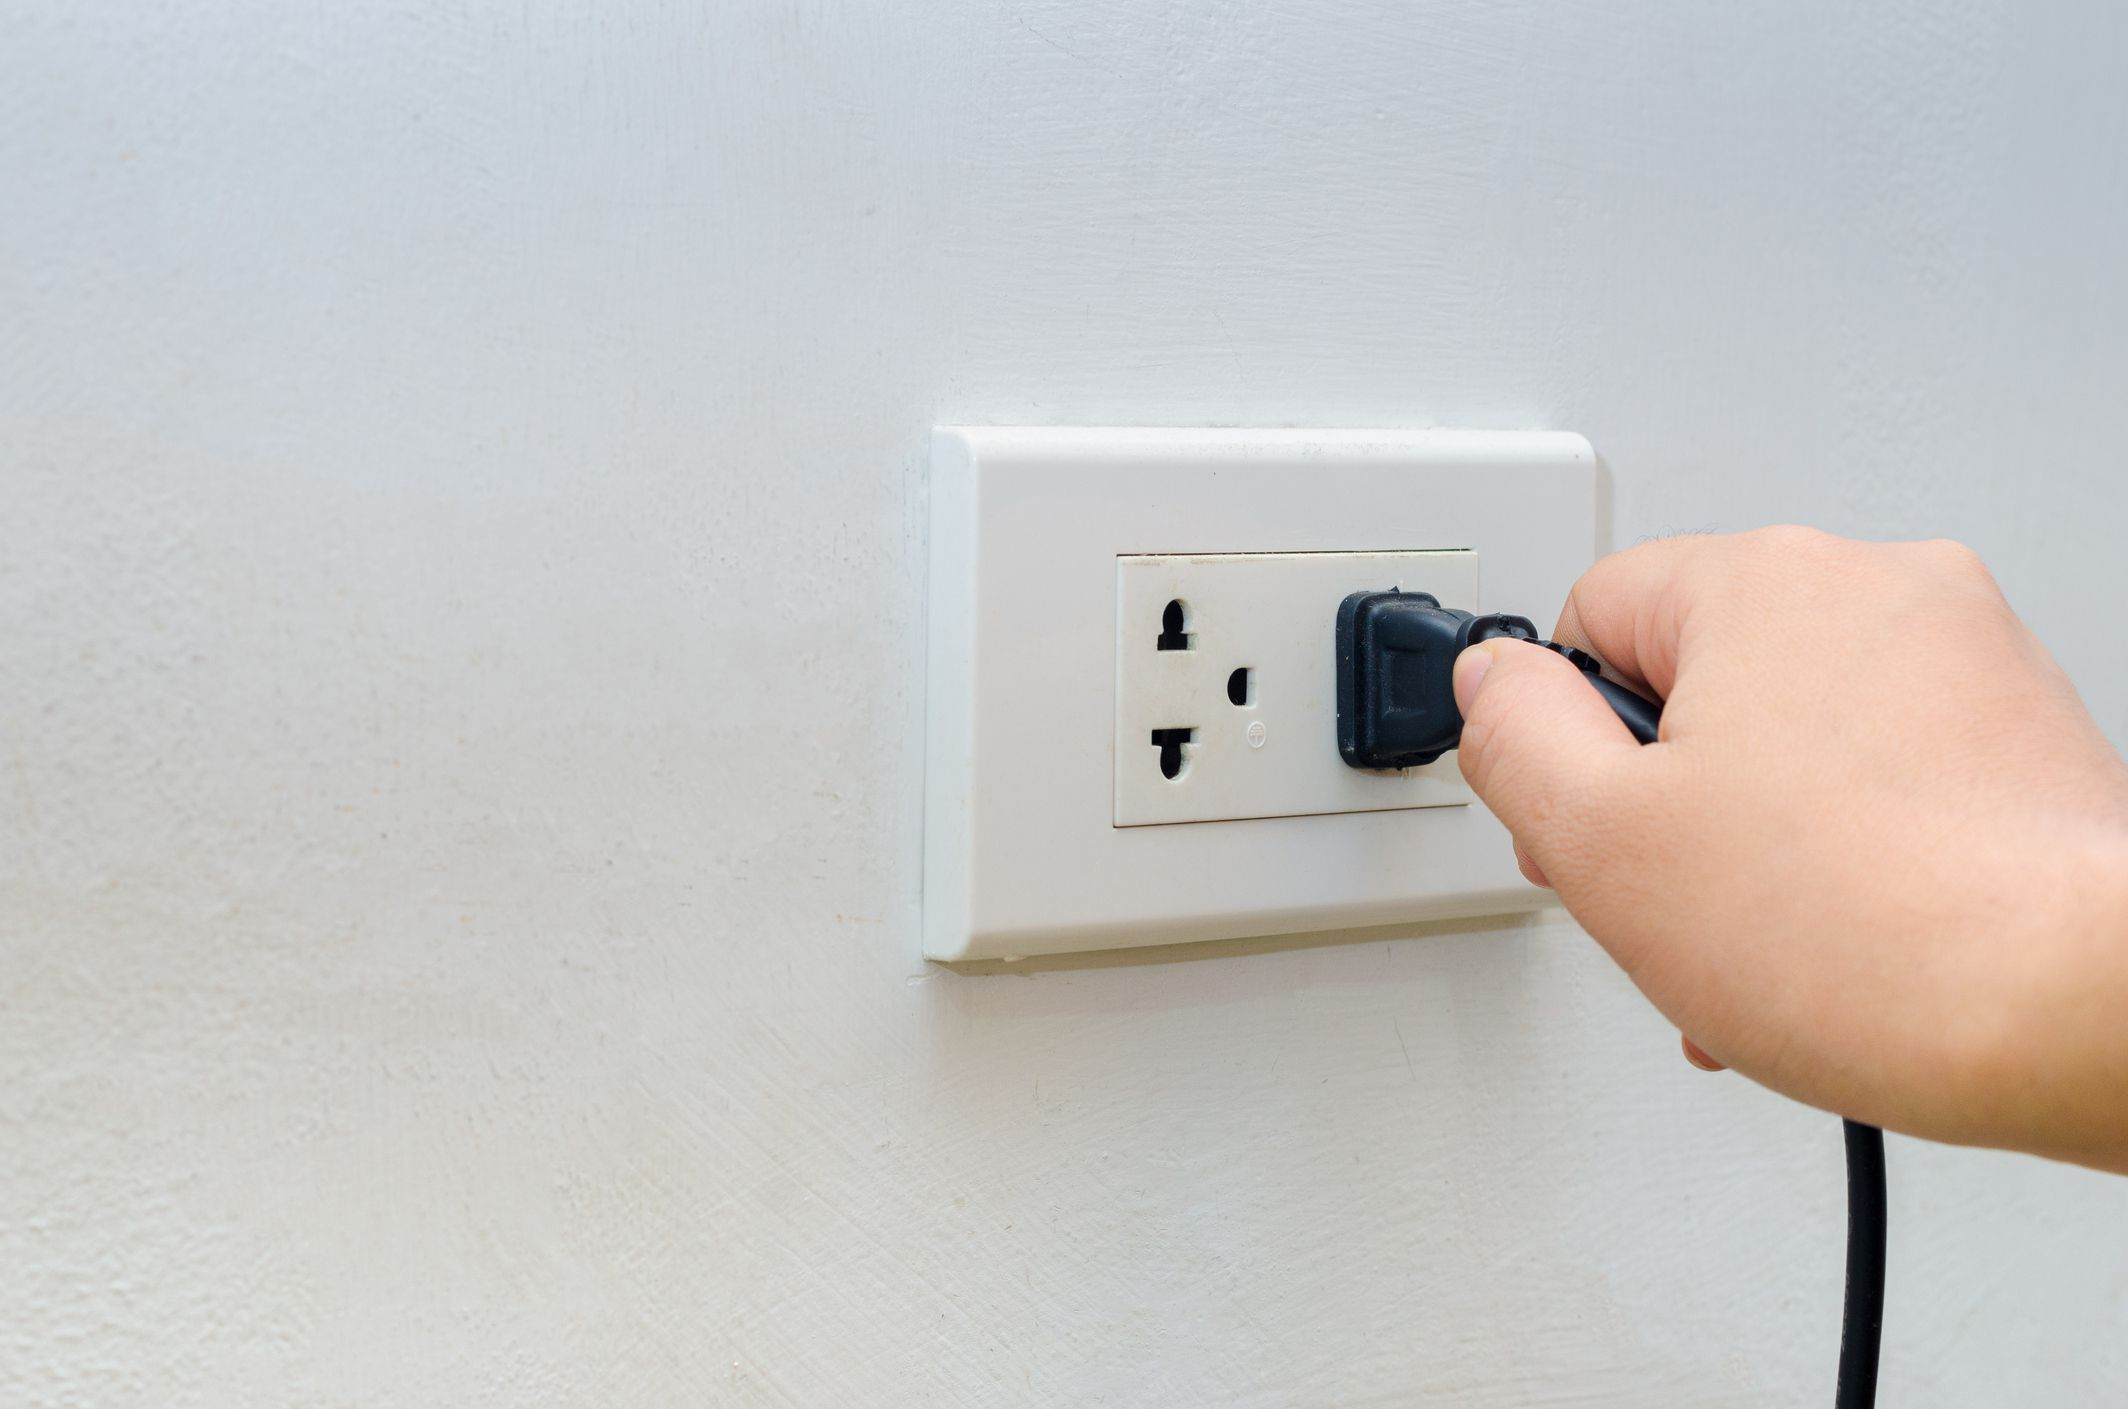 How To Prevent Electrical Shock Wiring A Switch Off Plug Hand Outlet Power Saving Inserting Into